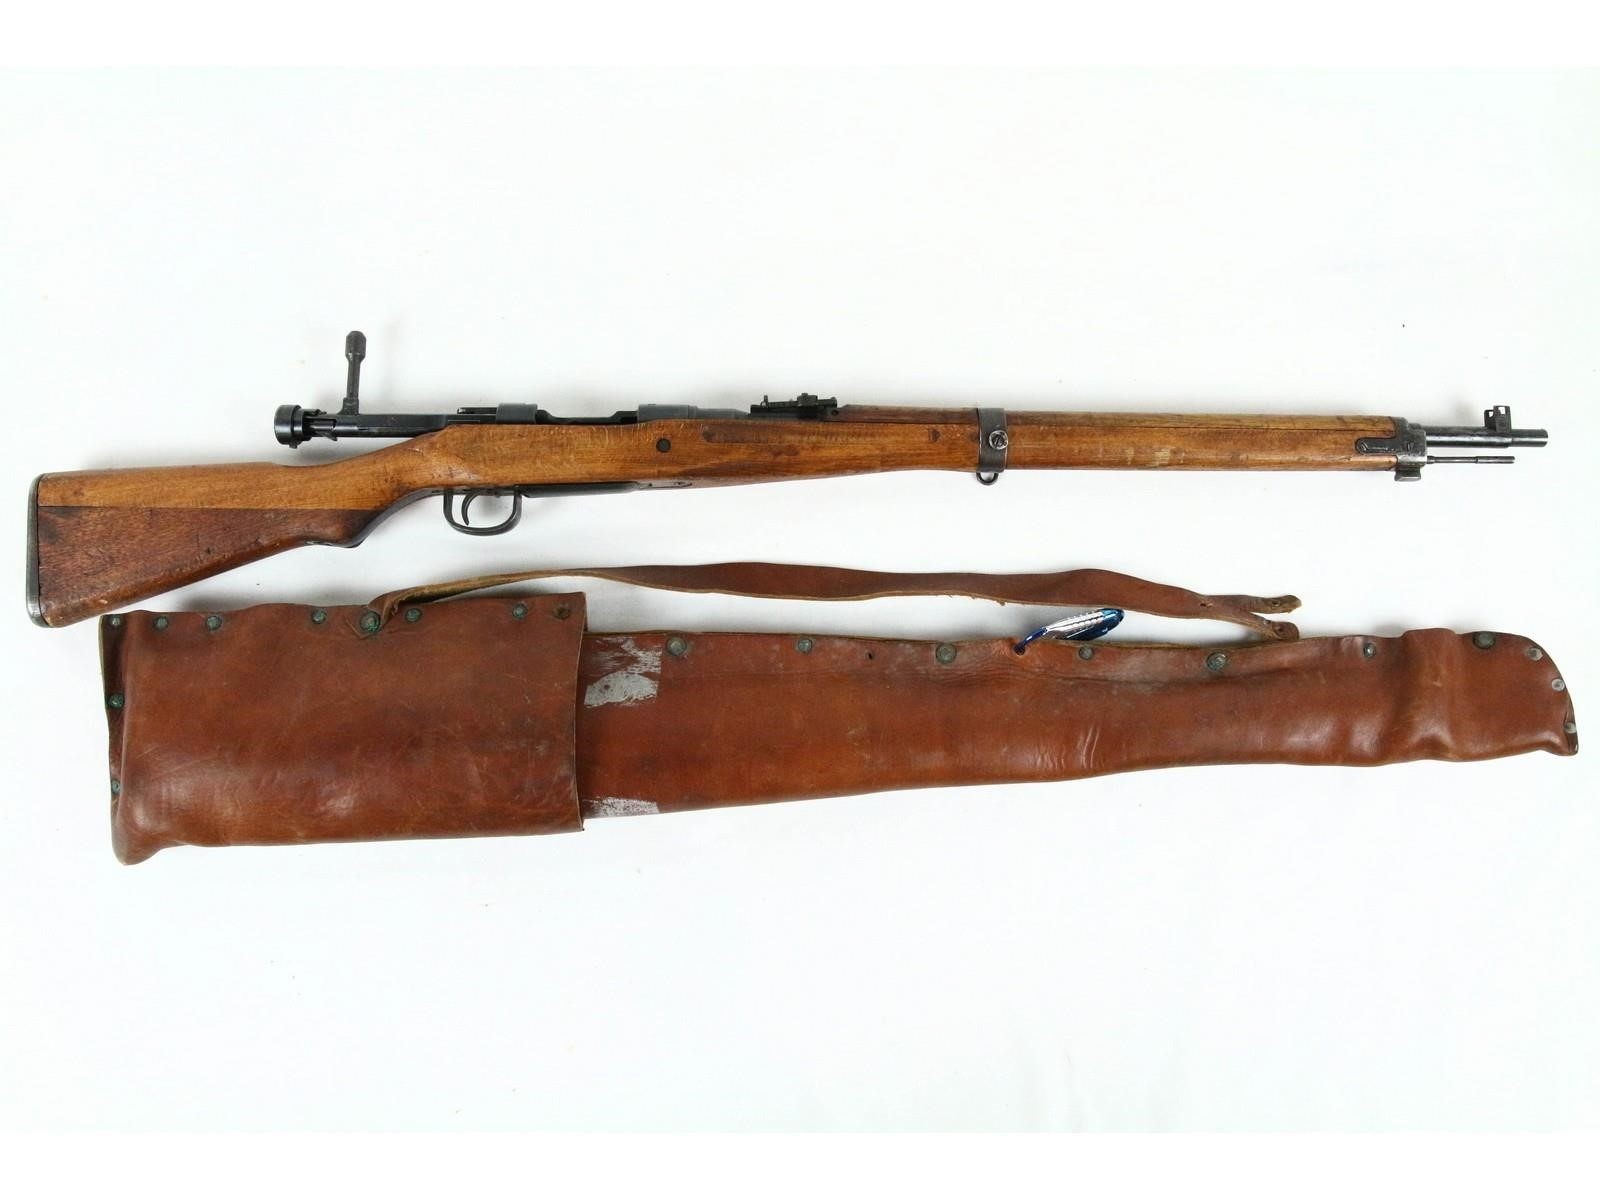 Japanese Type 99 Arisaka 7 7 Caliber Rifle | Donley Auction Services